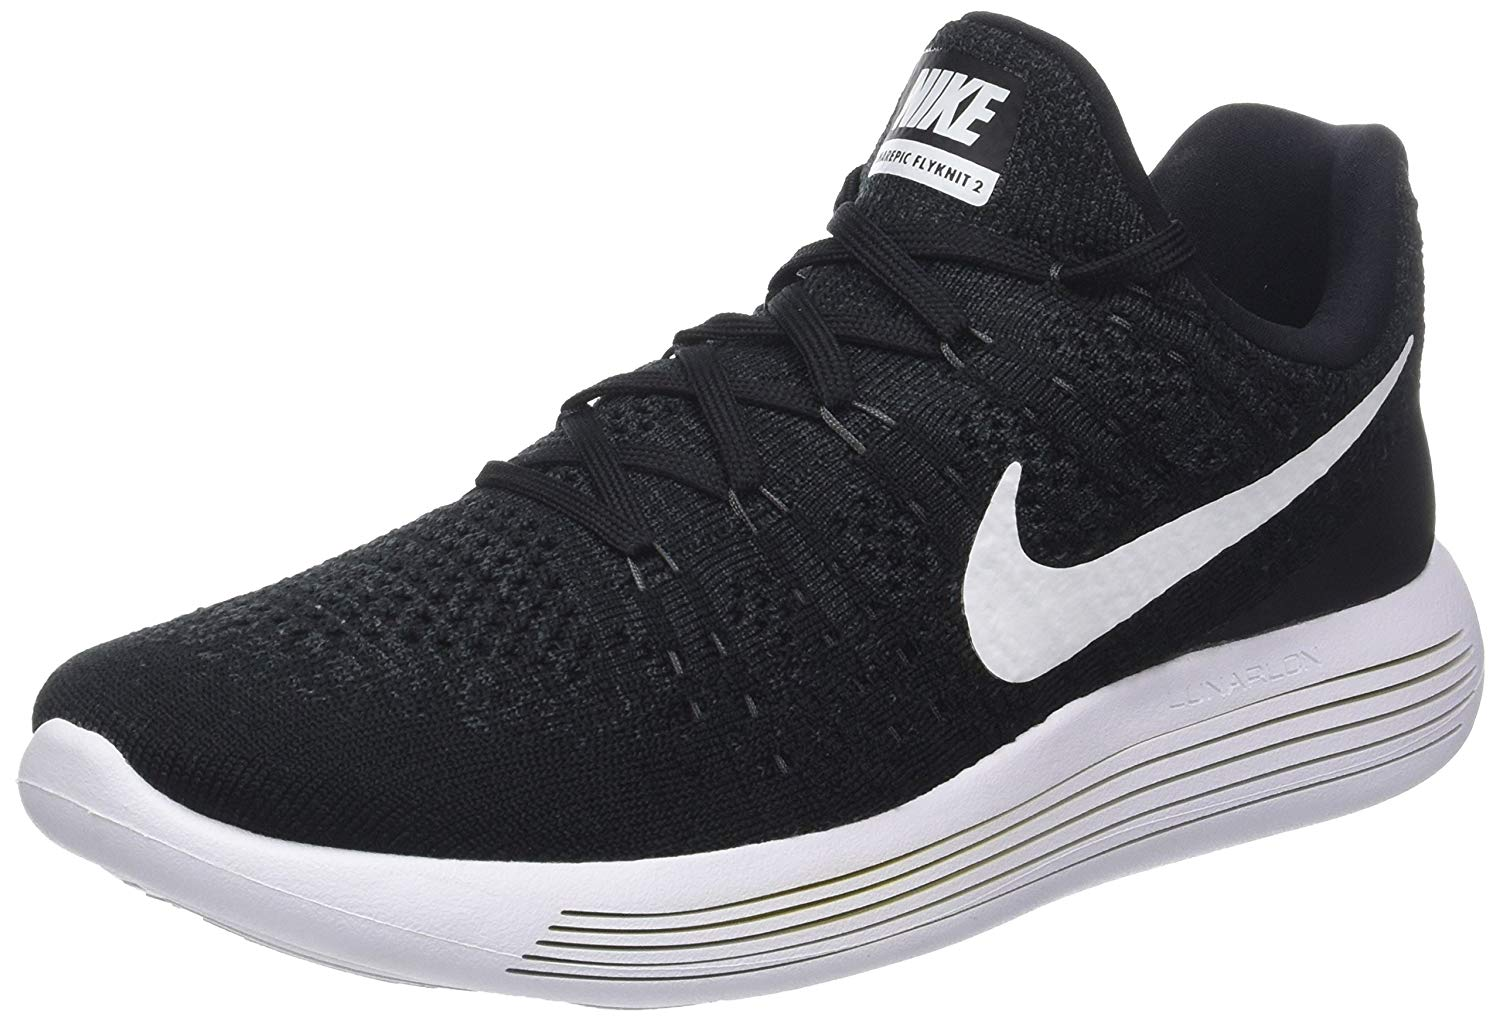 best sell best wholesaler new lower prices Nike LunarEpic Low Flyknit 2 Reviewed for Performance